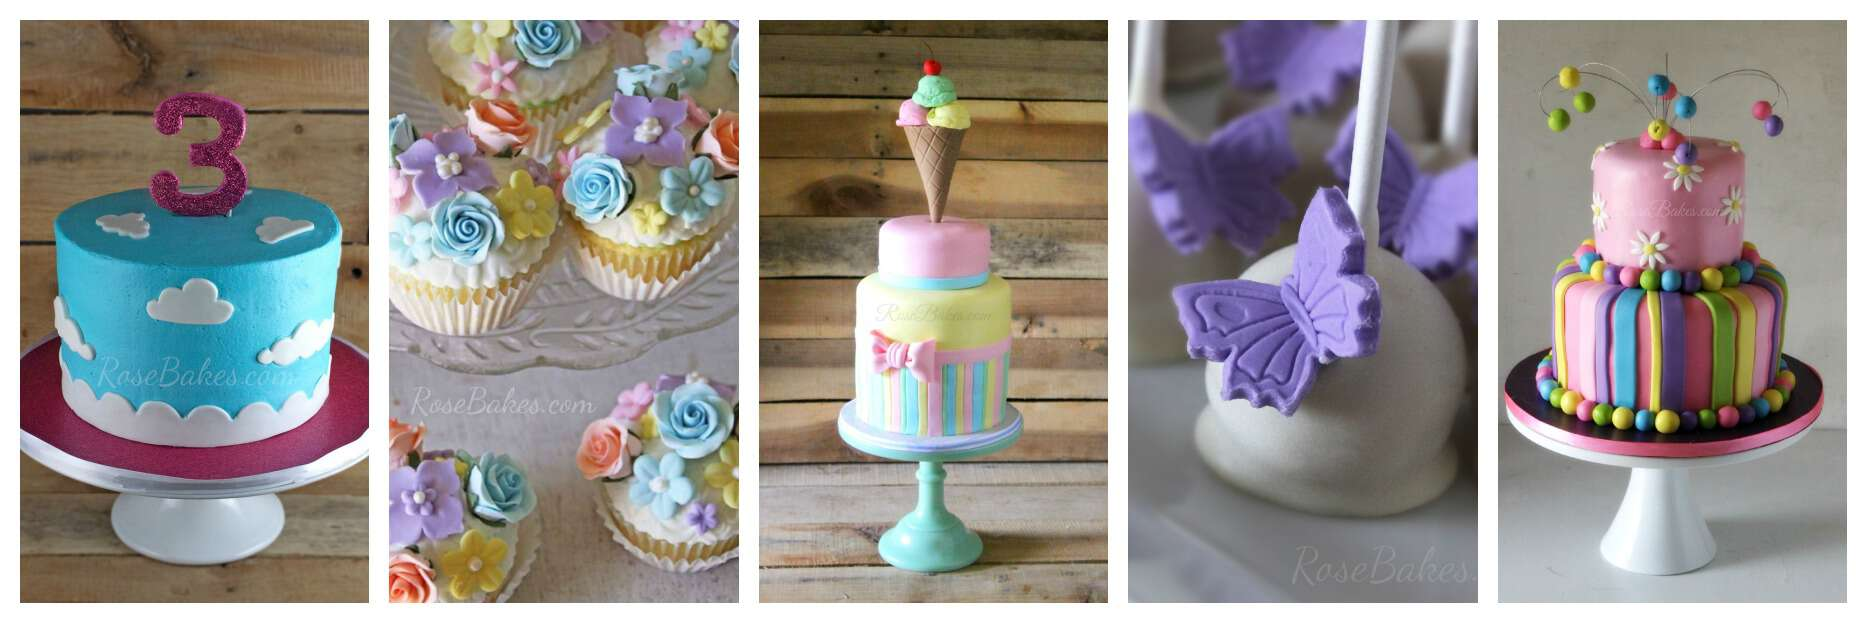 Spring Cakes Cupcakes Cake Pops